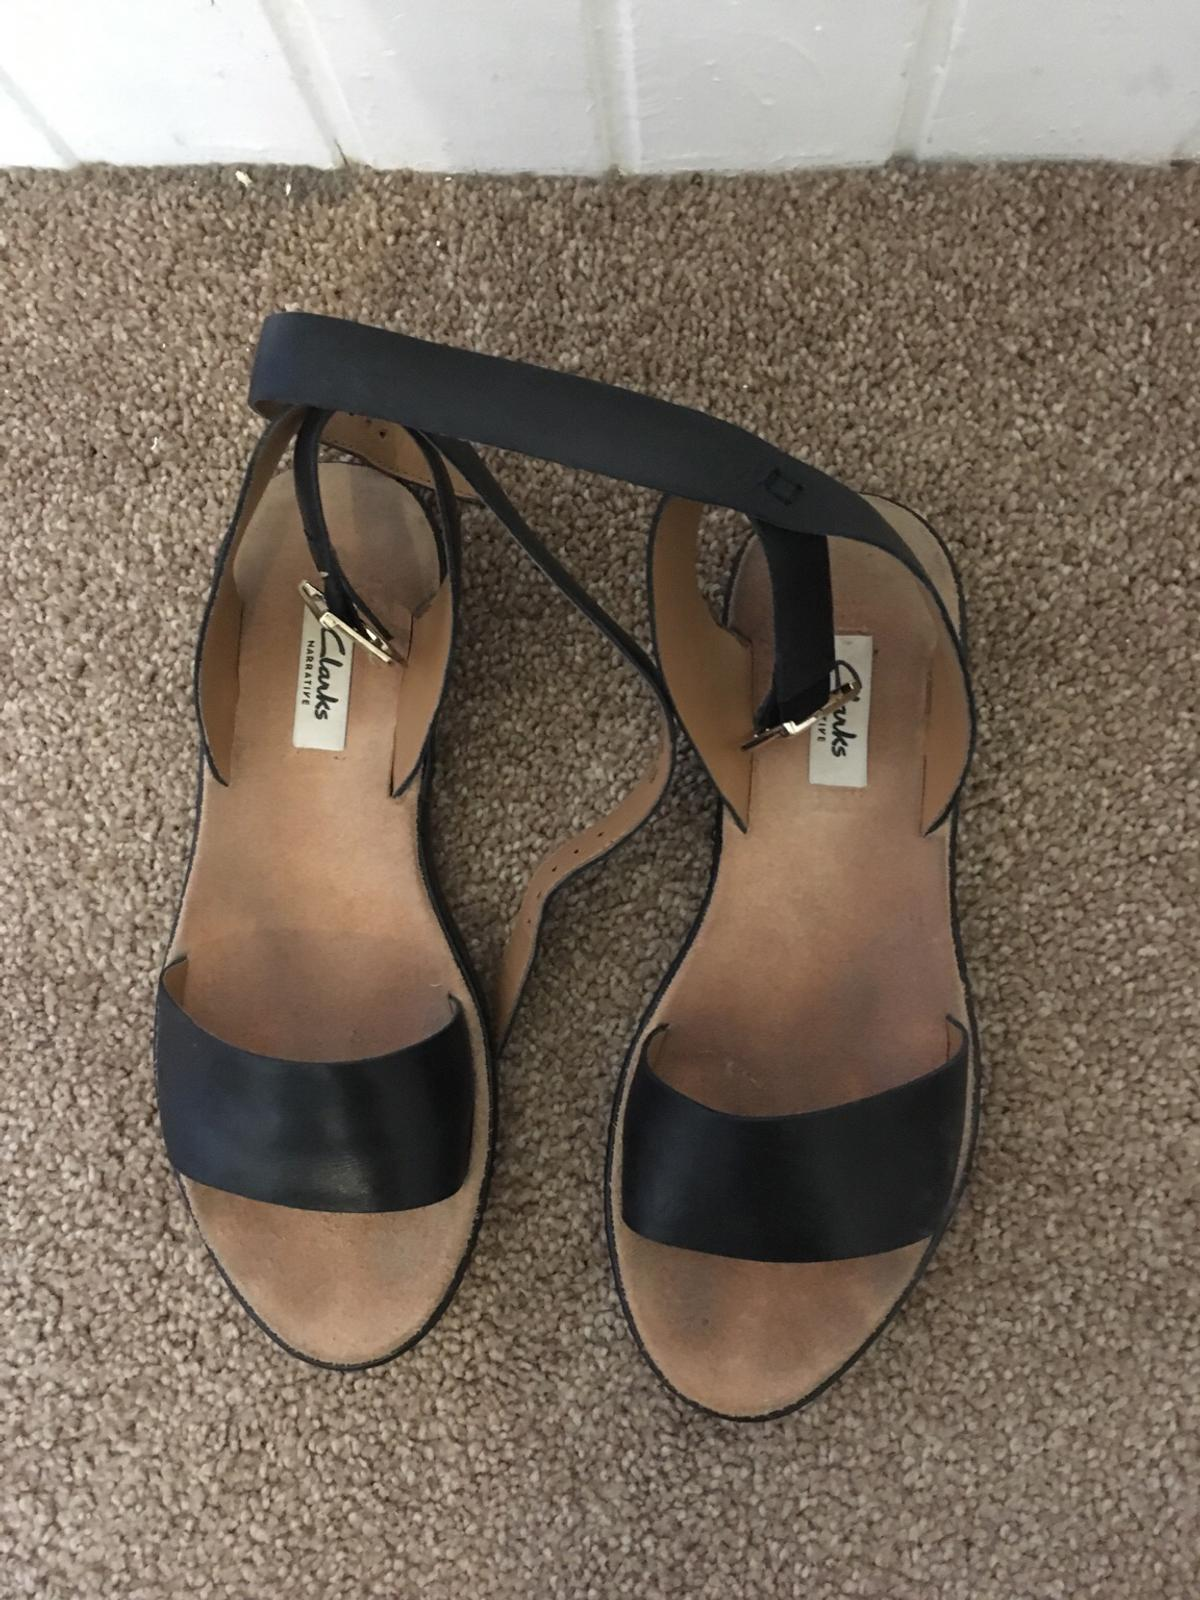 Clarks black leather sandals uk 5 in Manchester for £20.00